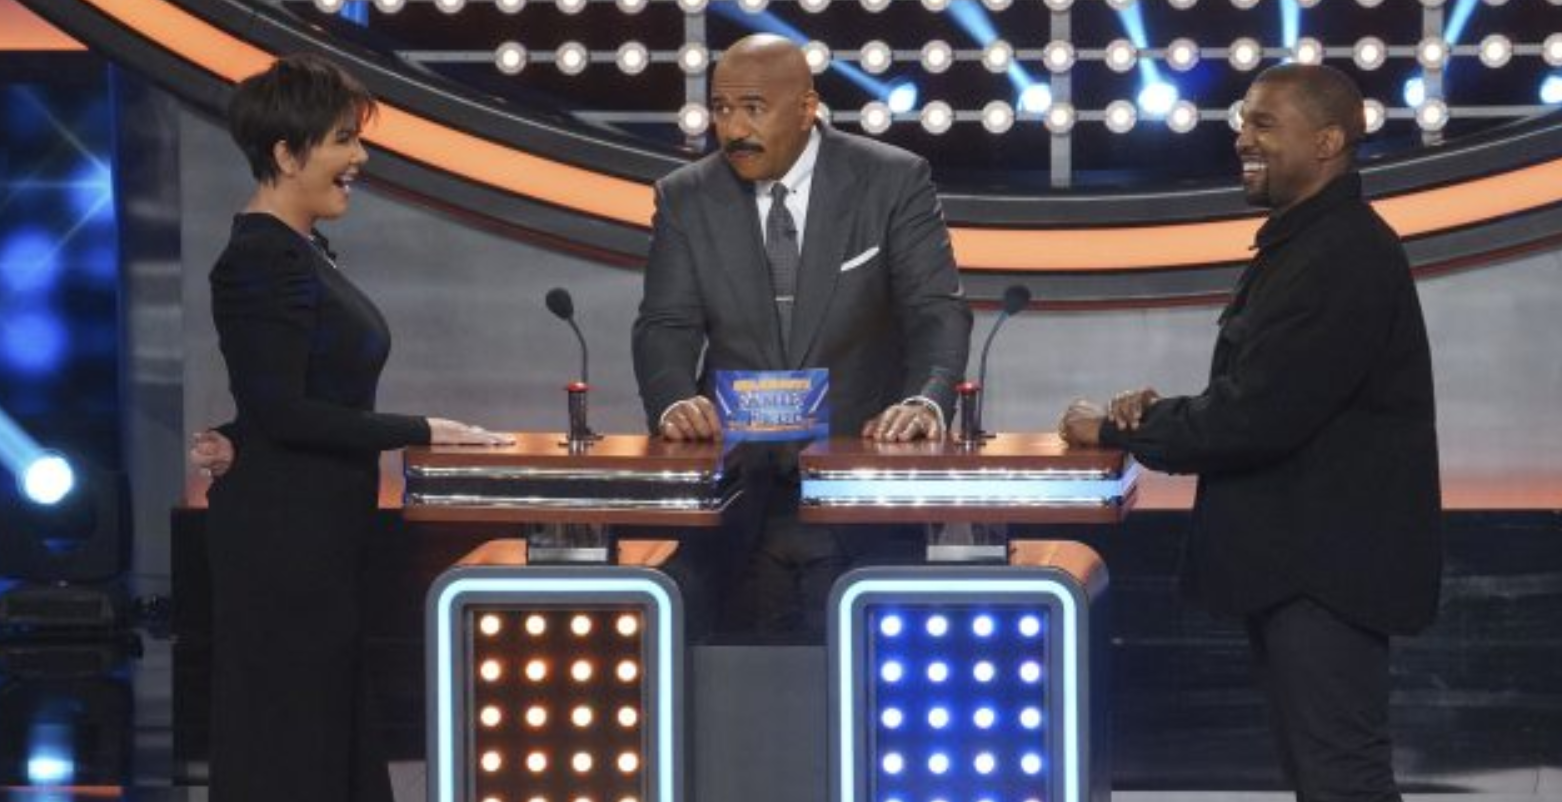 Sneak Peak of Kanye & the Kardashians' Family Feud Appearance